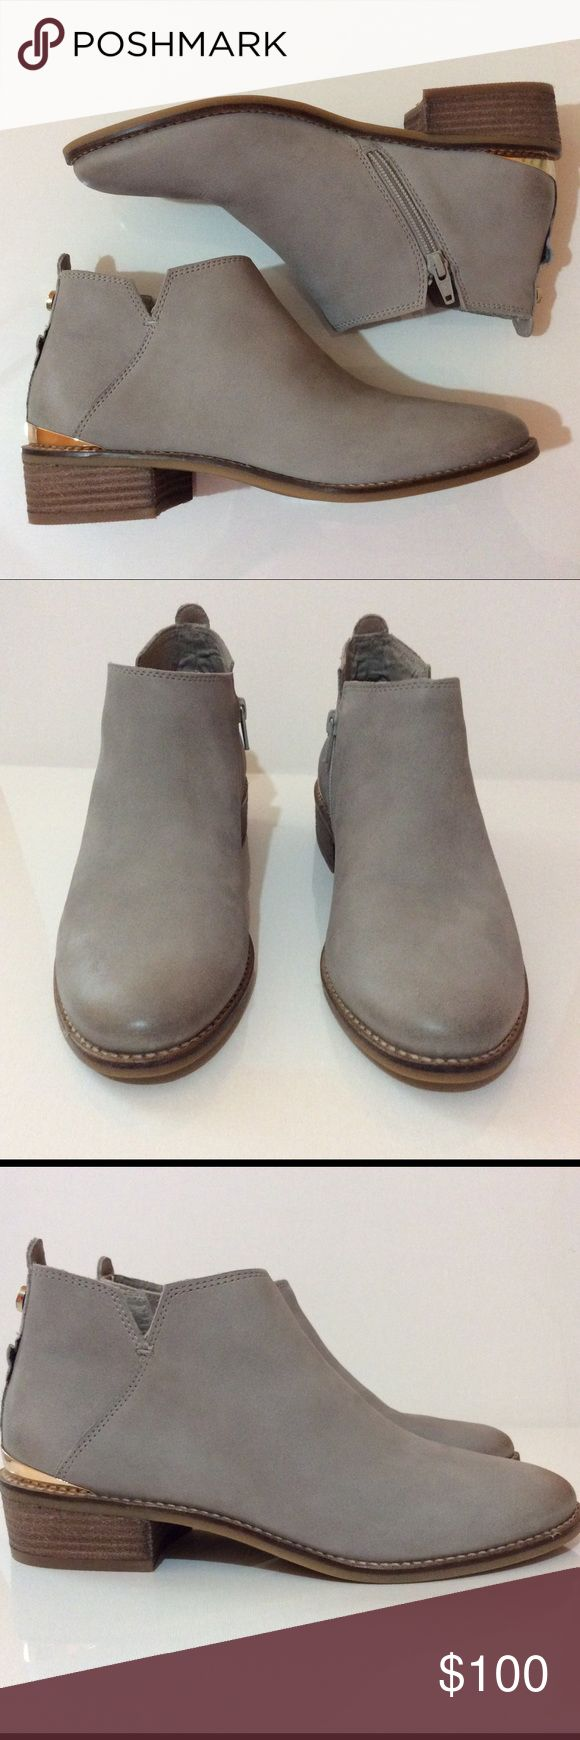 """STEVE MADDEN KESSEY BOOTIE Brand new. 1.25"""" heel height. Leather upper material. Metal rand detail at back of heel counter. Steve Madden Shoes Ankle Boots & Booties"""